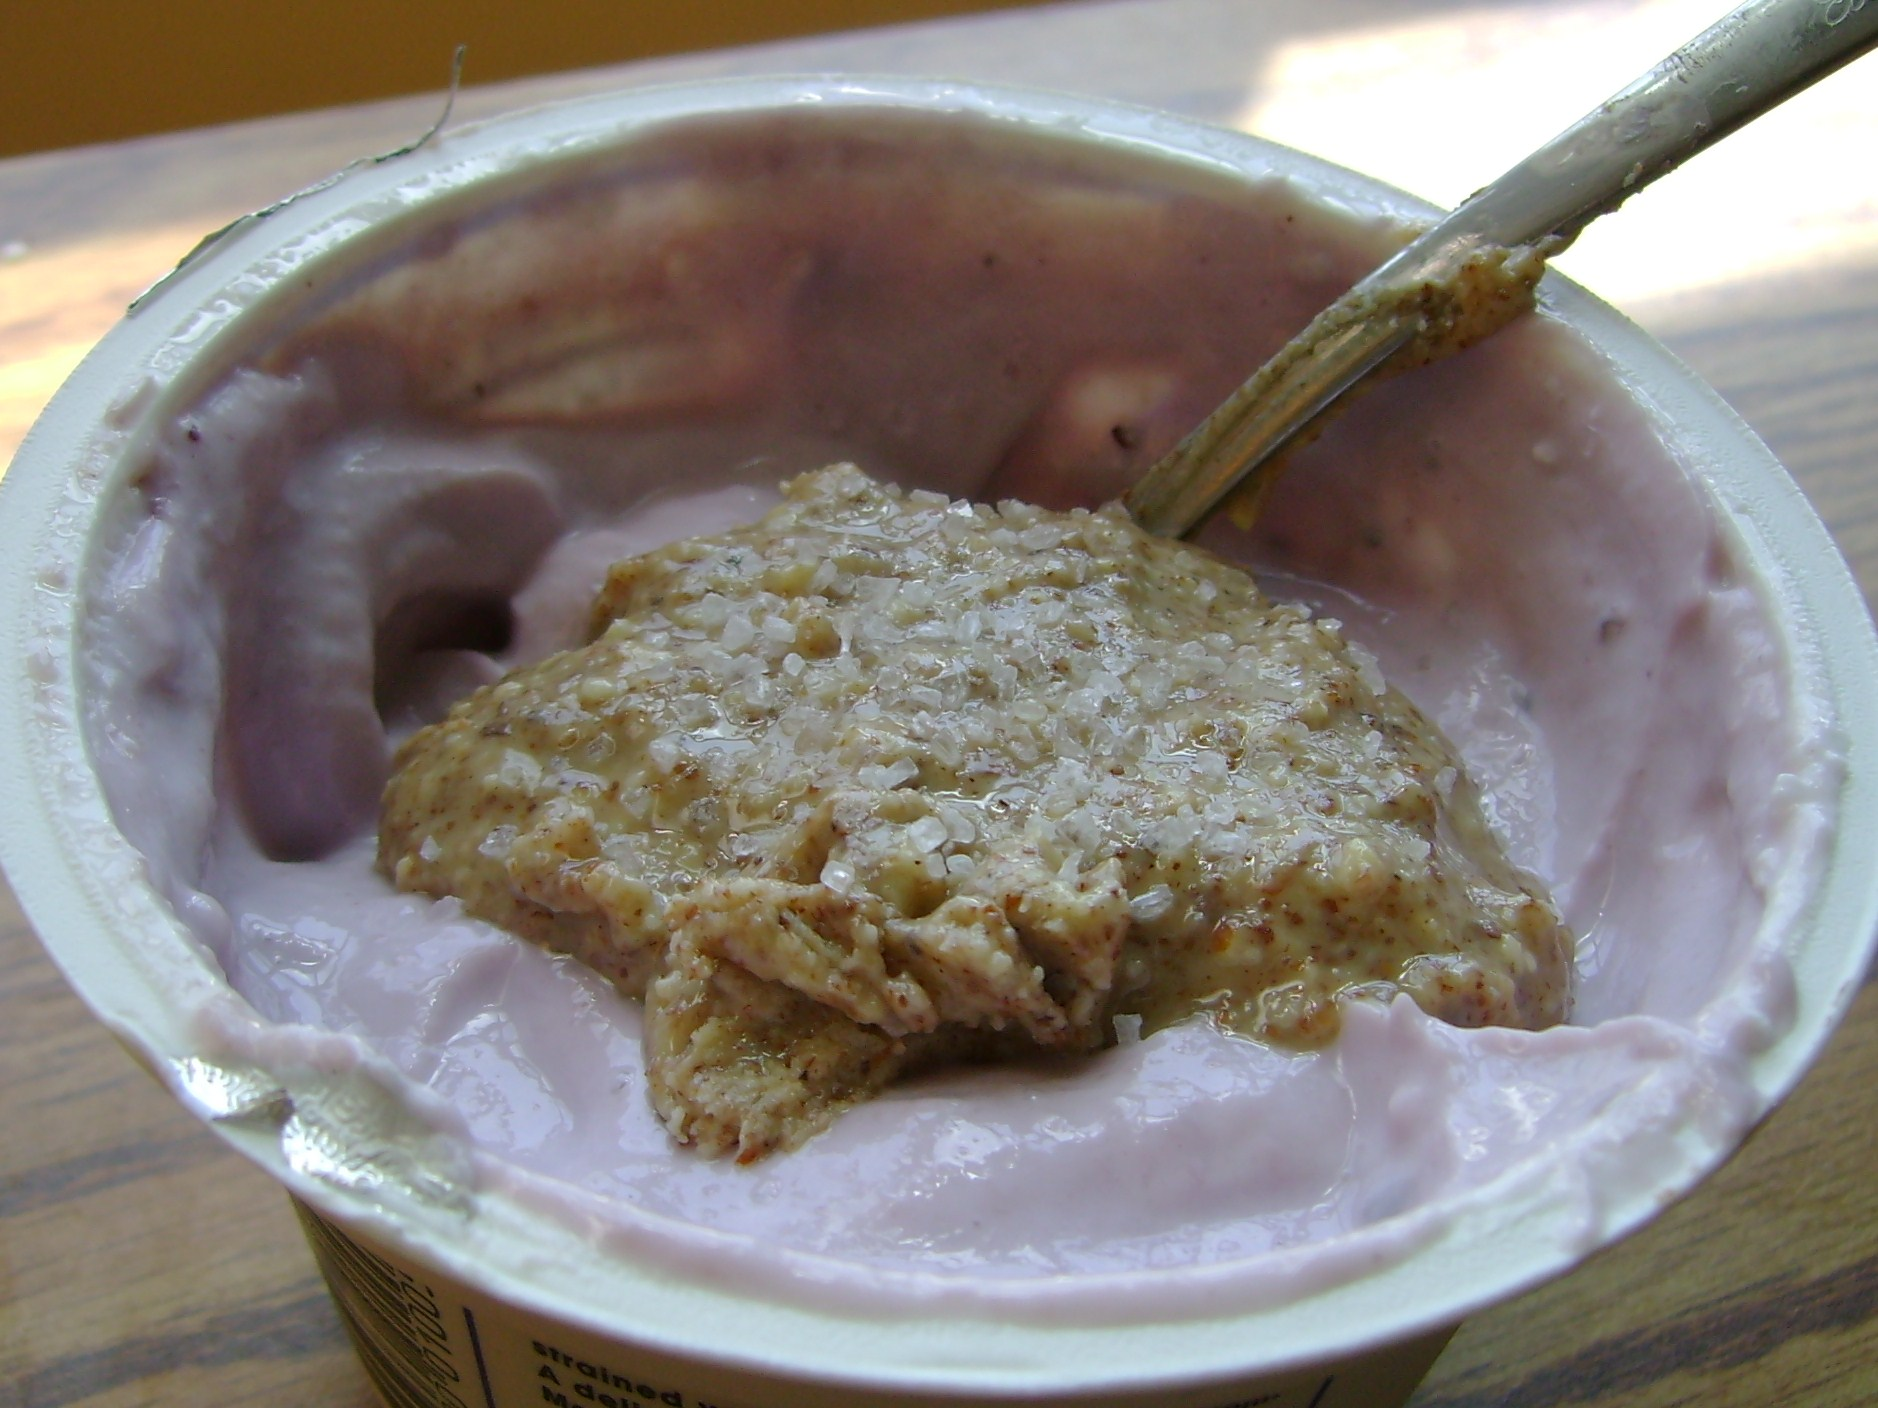 Blueberry Chobani With Raw Almond Butter